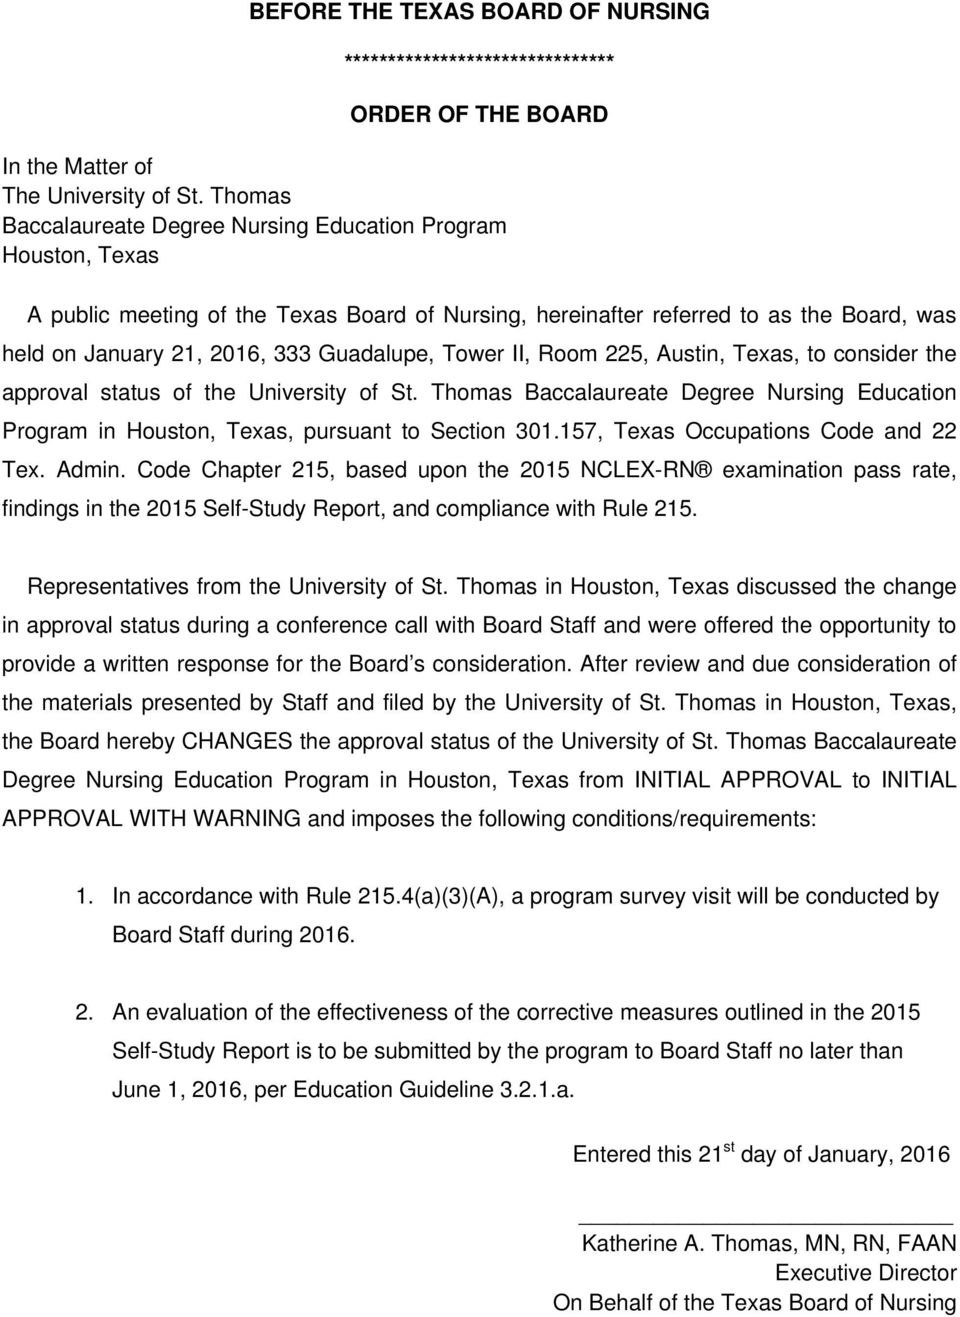 Tower II, Room 225, Austin, Texas, to consider the approval status of the University of St. Thomas Baccalaureate Degree Nursing Education Program in Houston, Texas, pursuant to Section 301.